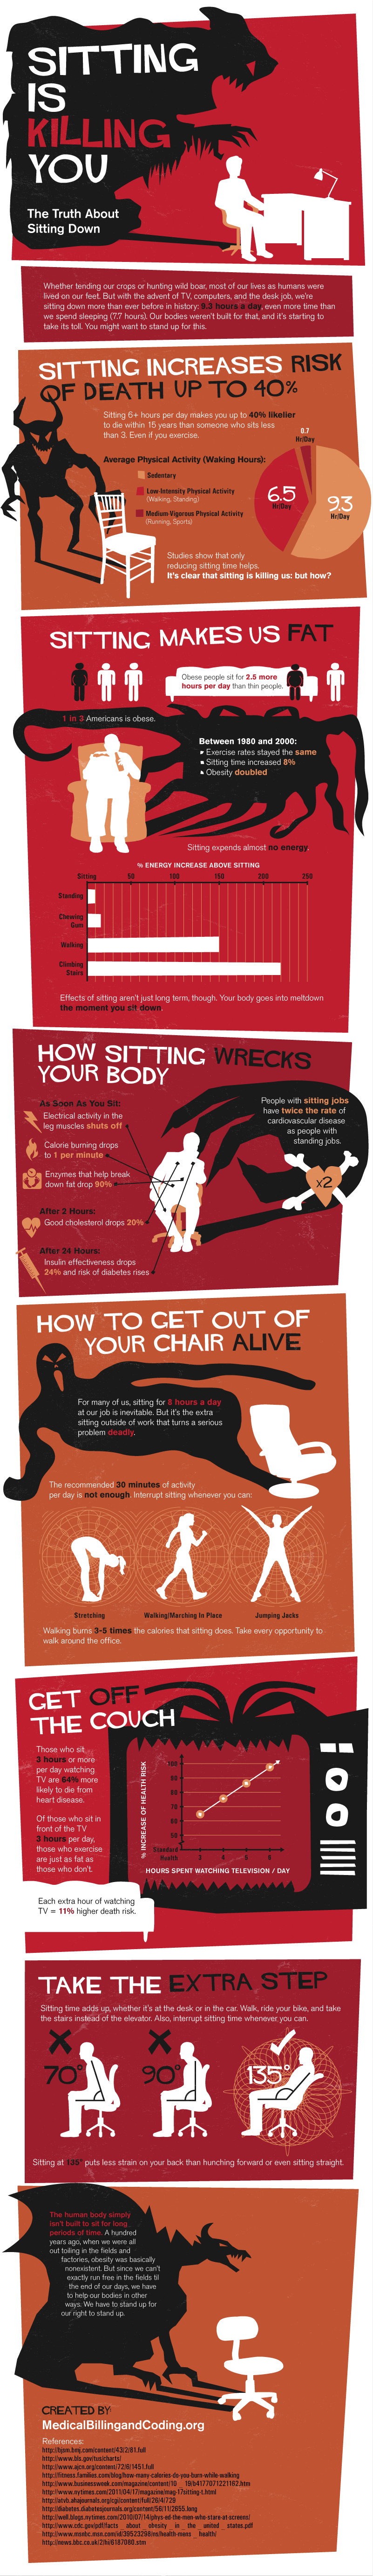 Sitting Down Is Killing You [Infographic]